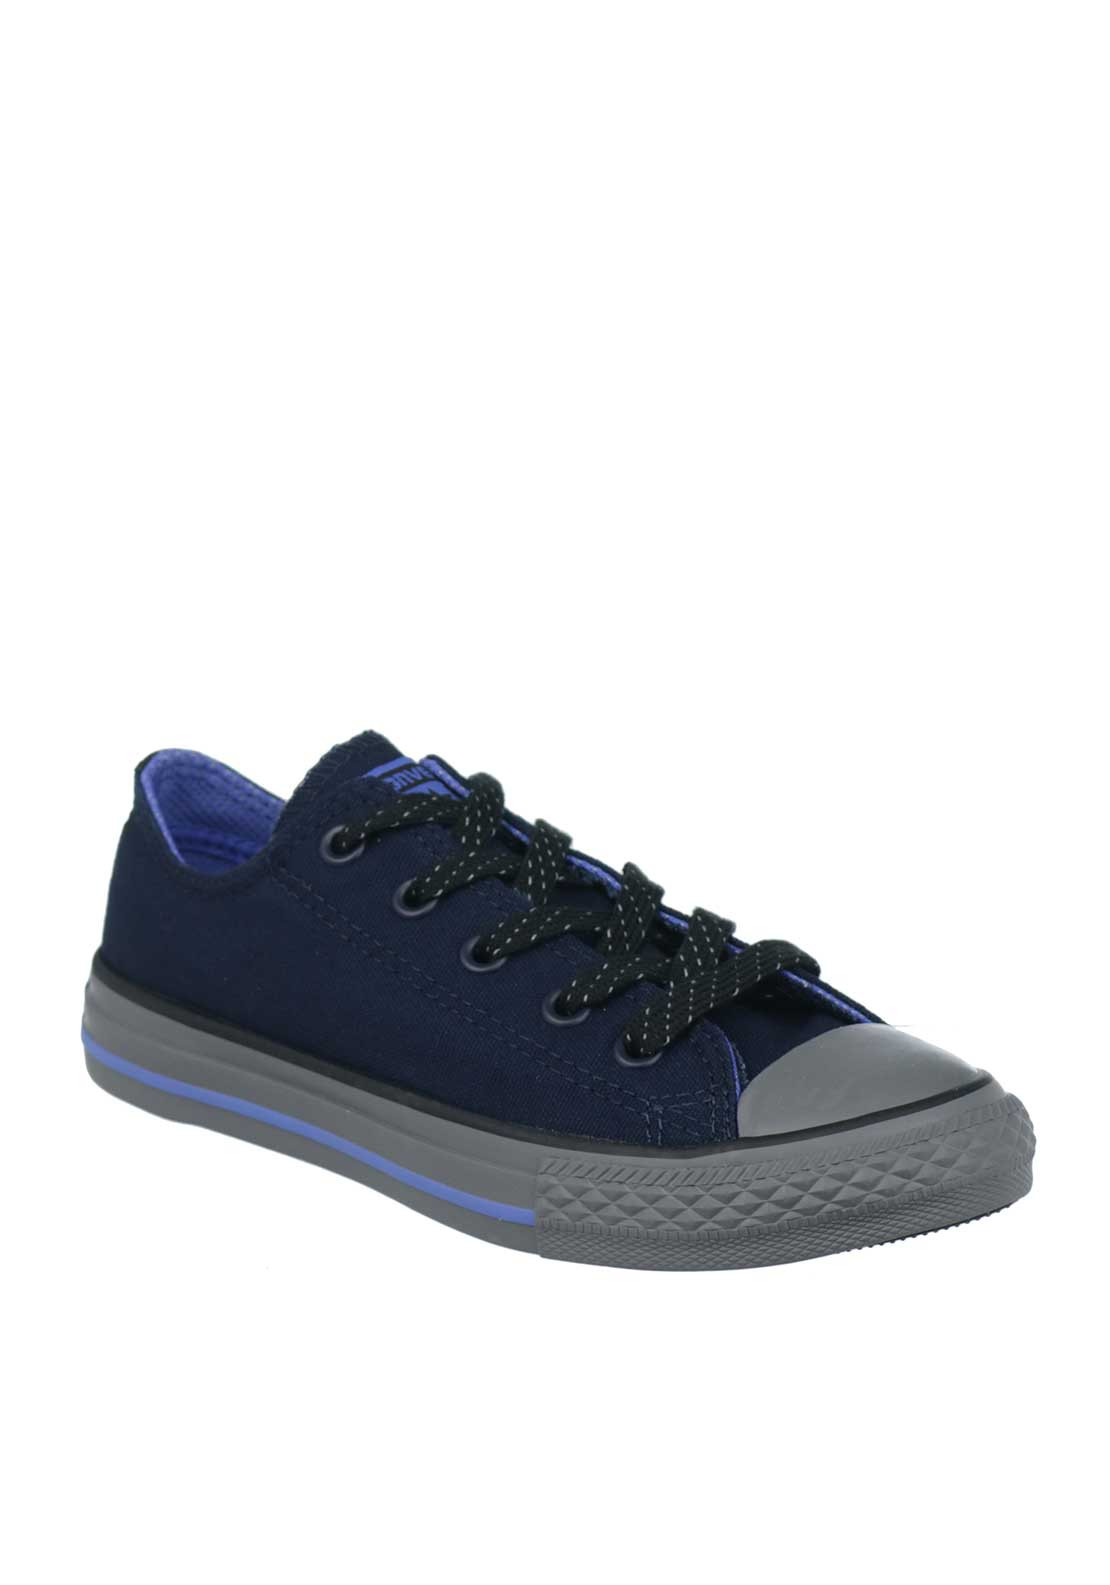 Converse Boys All Star Trainers, Navy